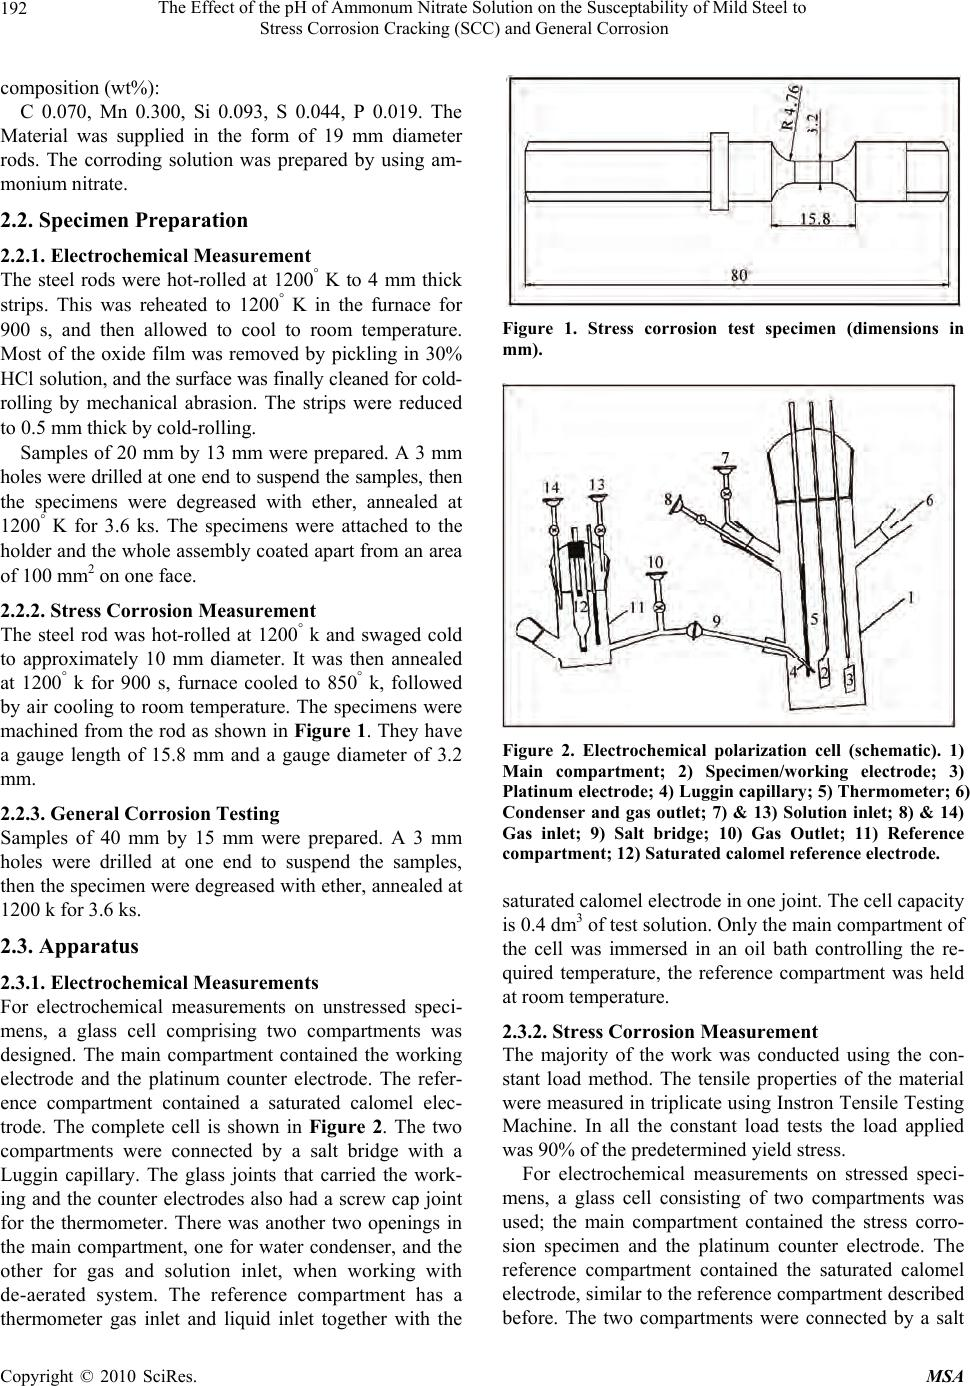 The effect of the ph of ammonum nitrate solution on the susceptability of mild steel to